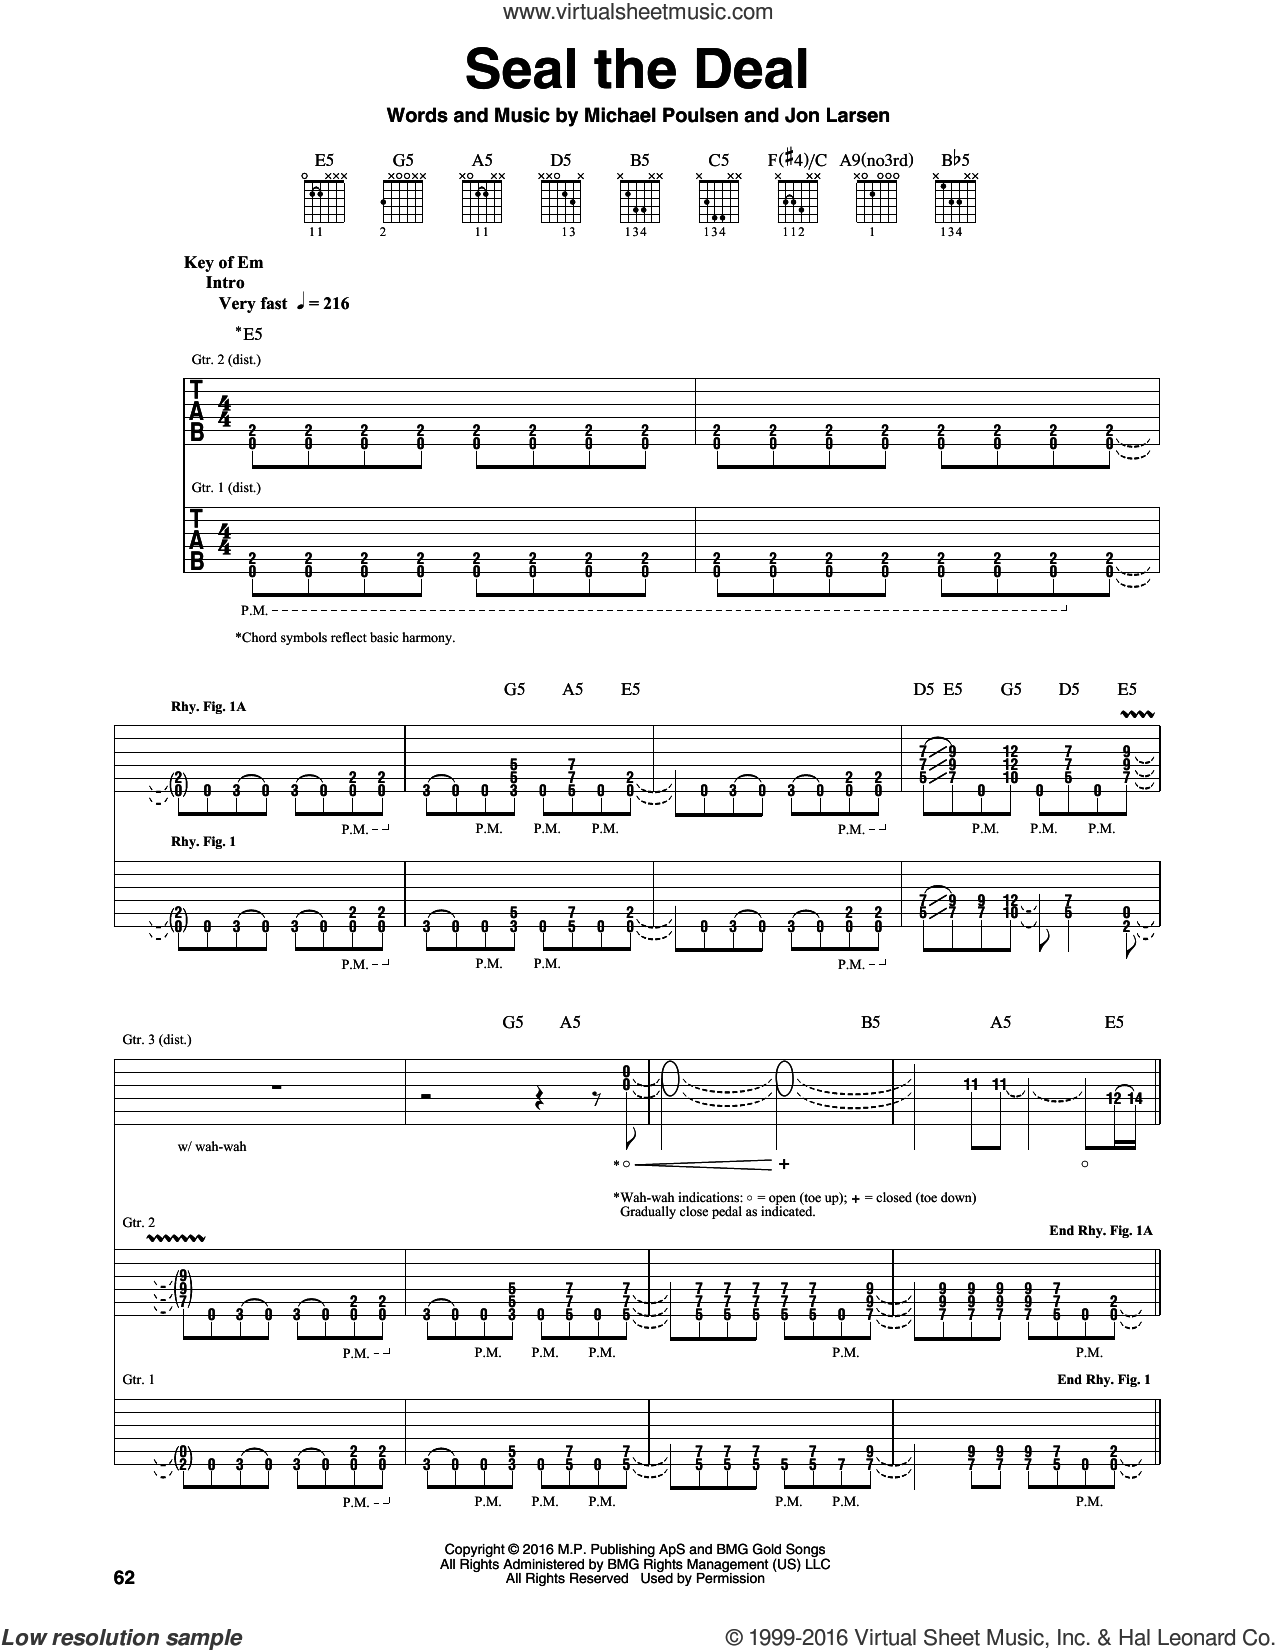 Seal The Deal sheet music for guitar (rhythm tablature) by Volbeat, Jon Larsen and Michael Poulsen, intermediate skill level